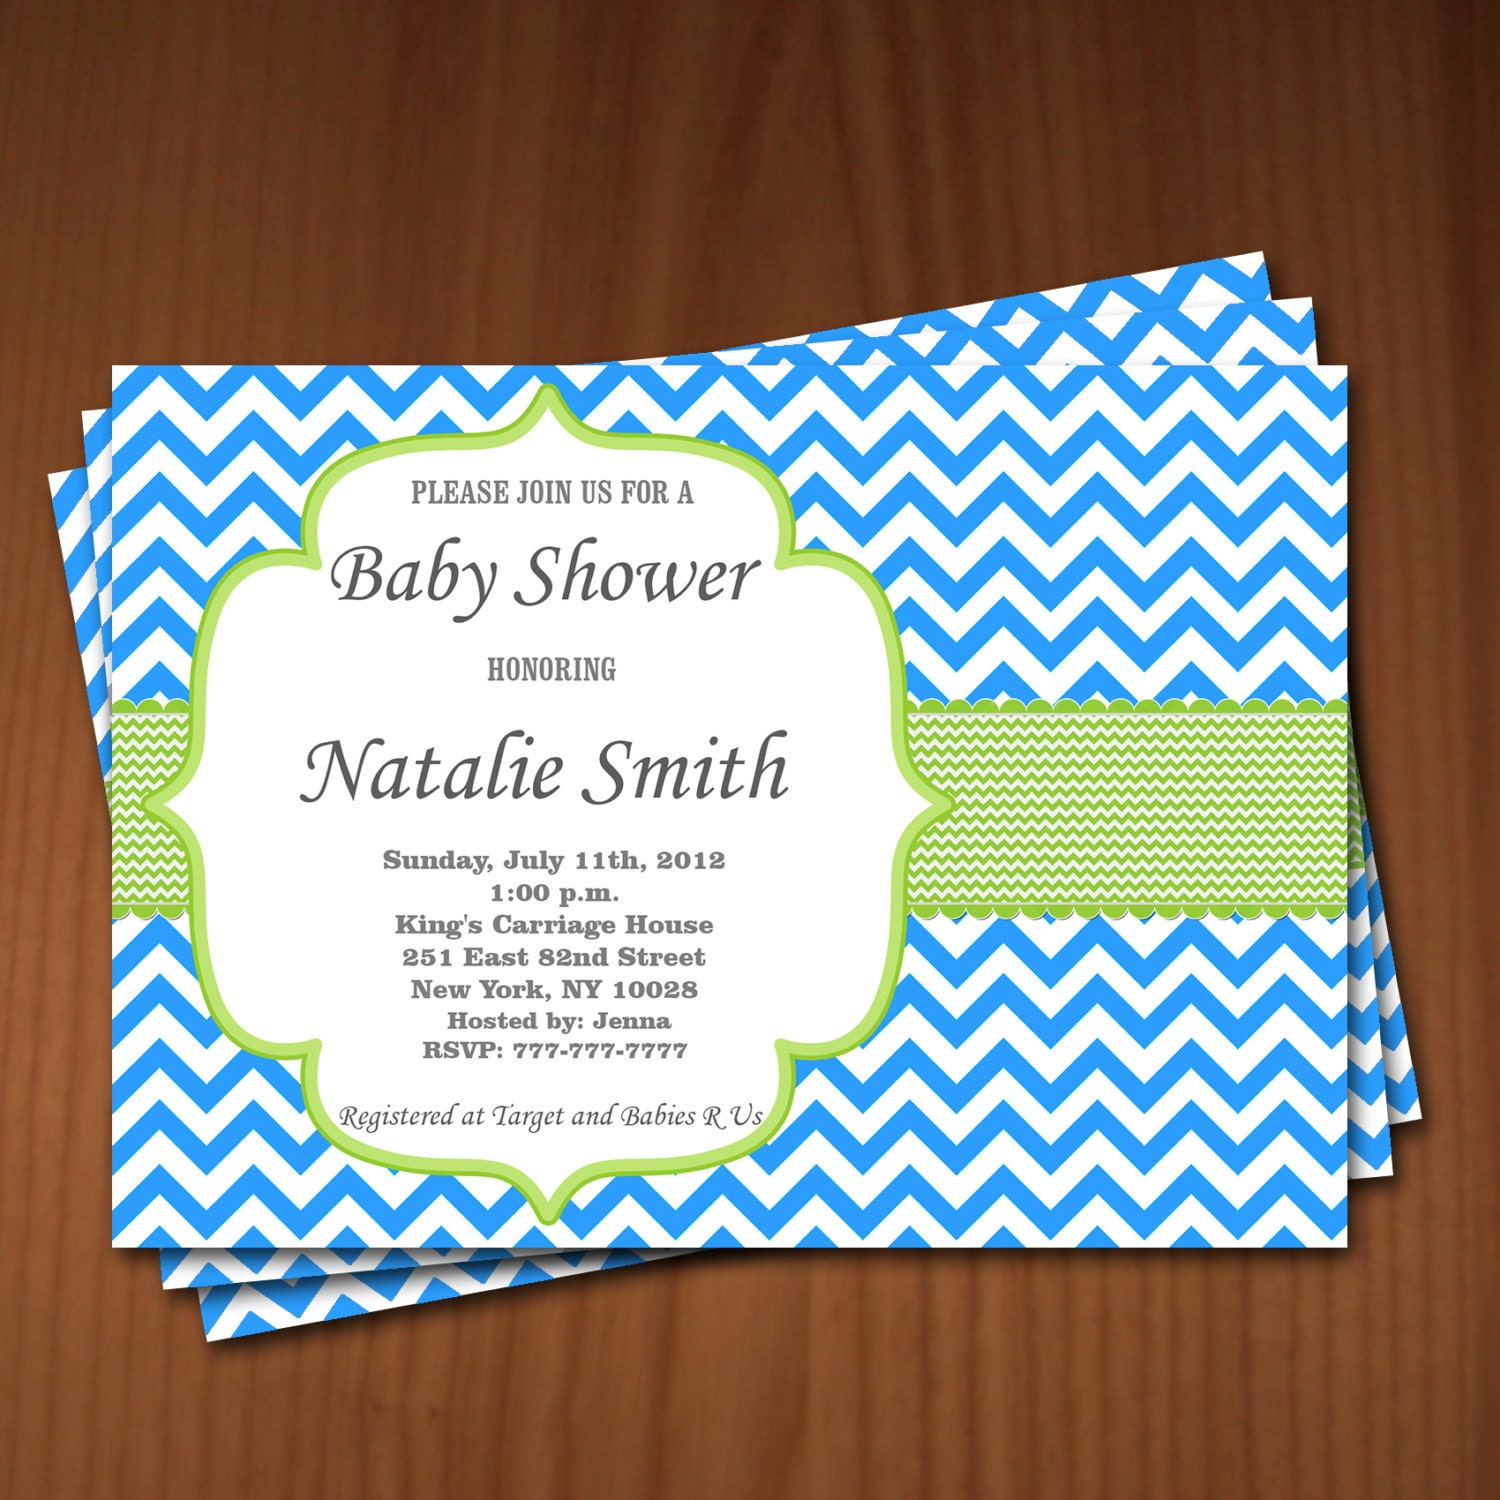 Free Printable Baby Shower Invitations - LoveToKnow